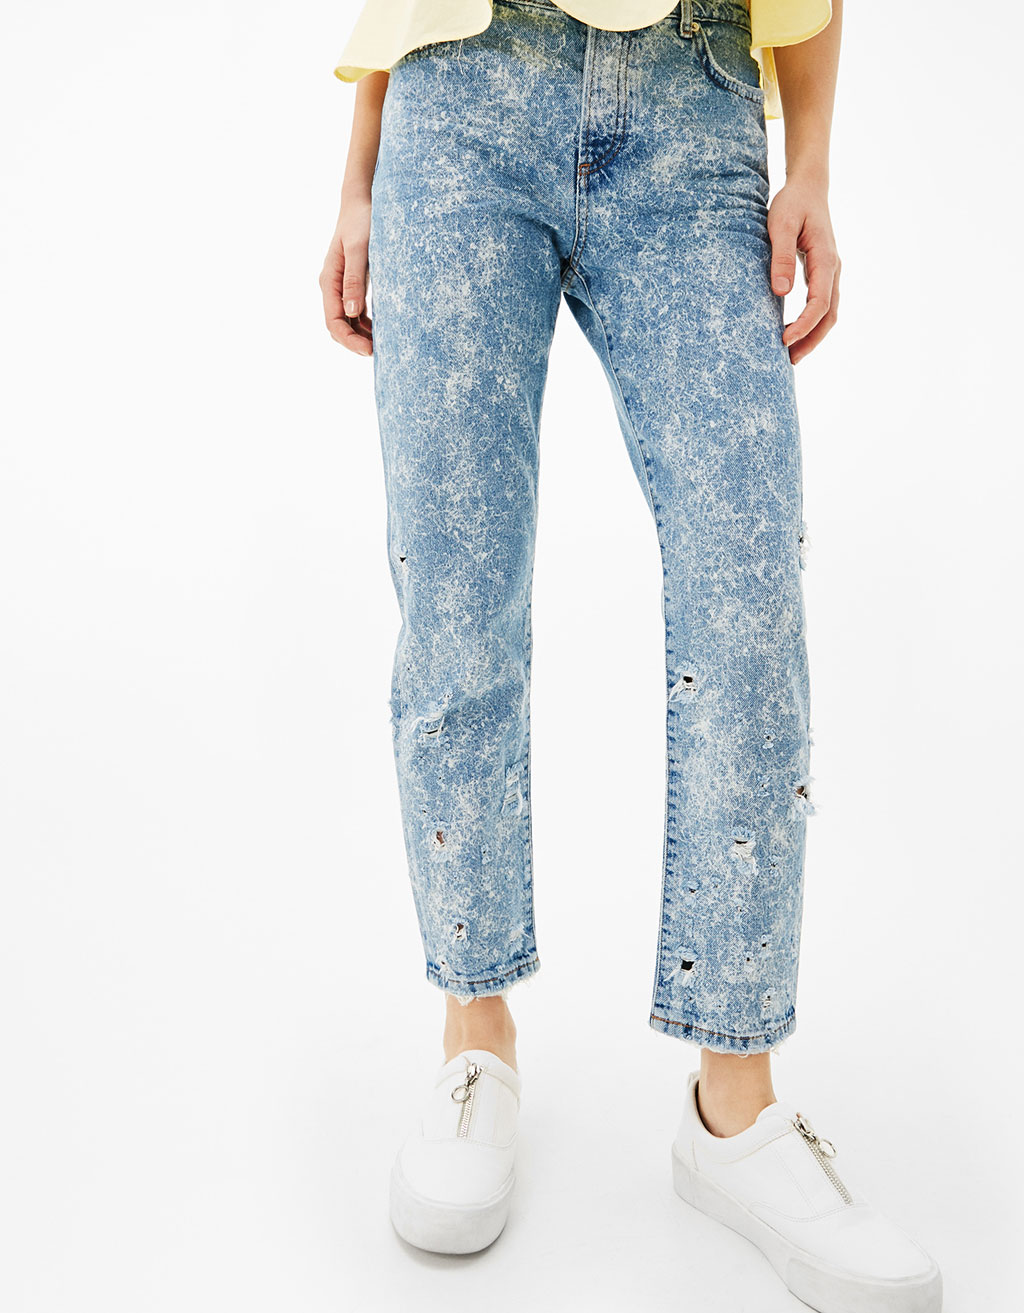 Relaxed Fit acid jeans with holes